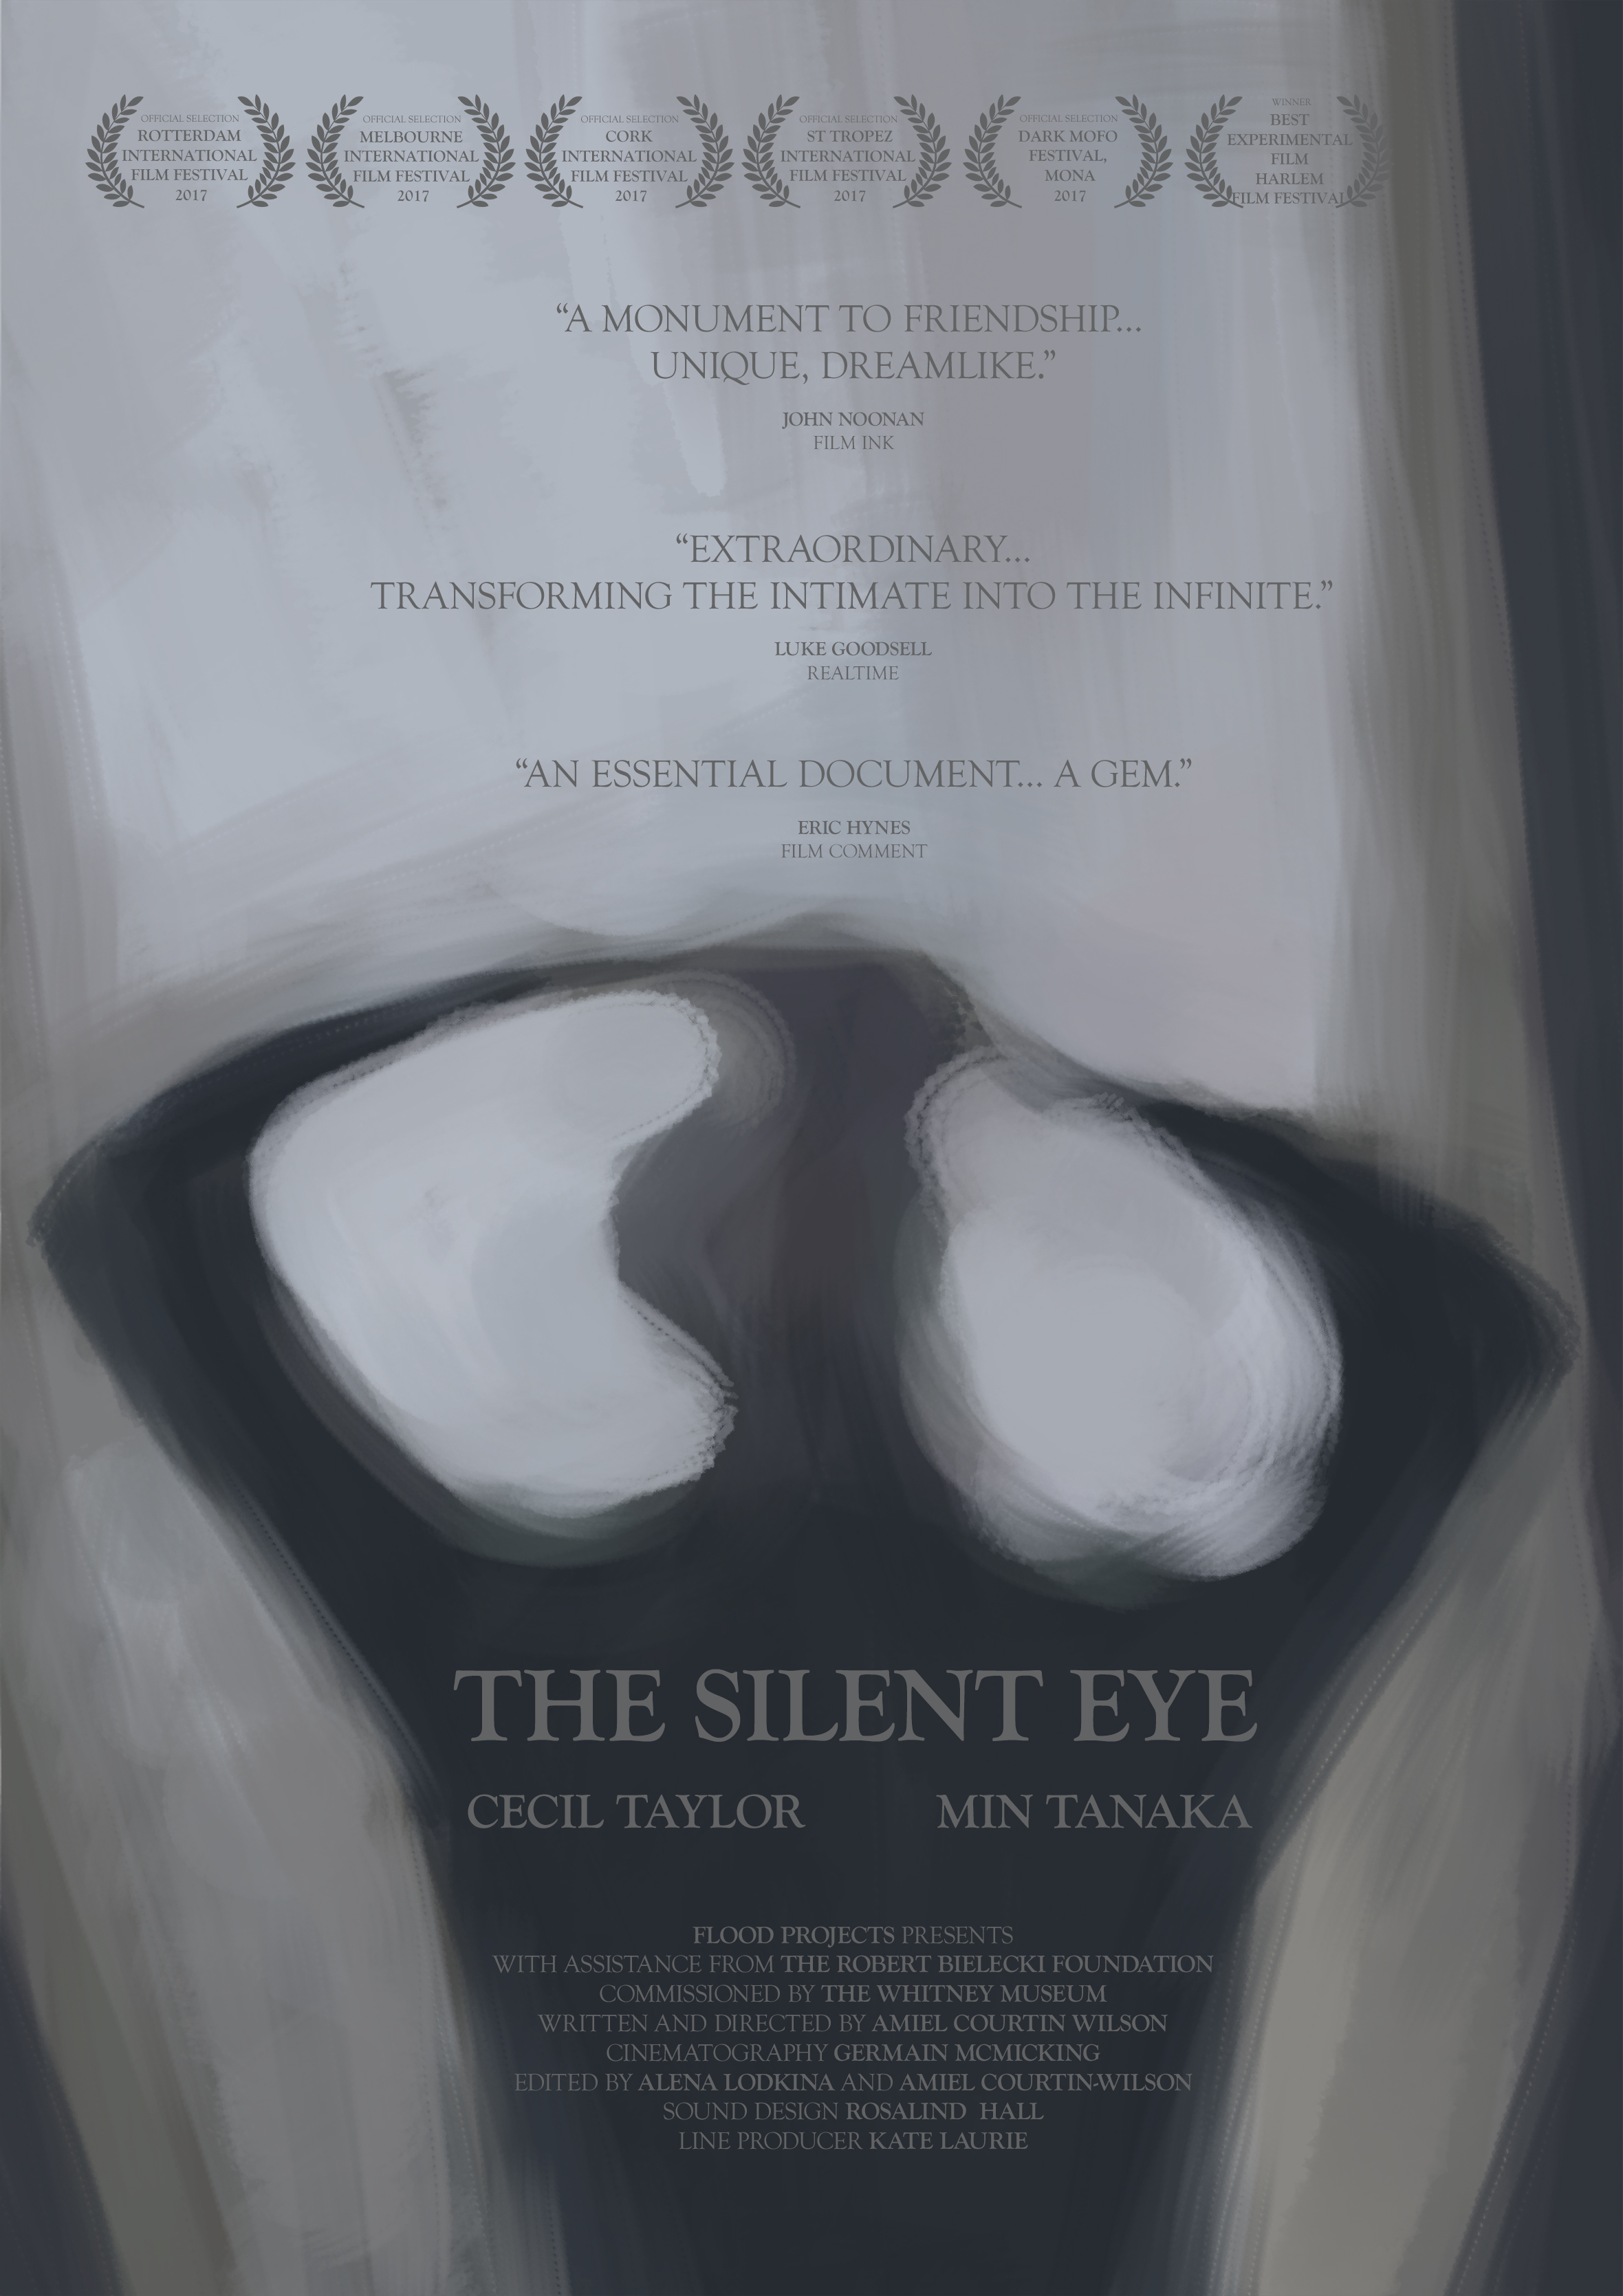 - THE SILENT EYE is a highly intimate, impressionistic portrait of the unspoken rapport between Cecil Taylor and Min Tanaka – two masters of their form who have collaborated for over thirty years.